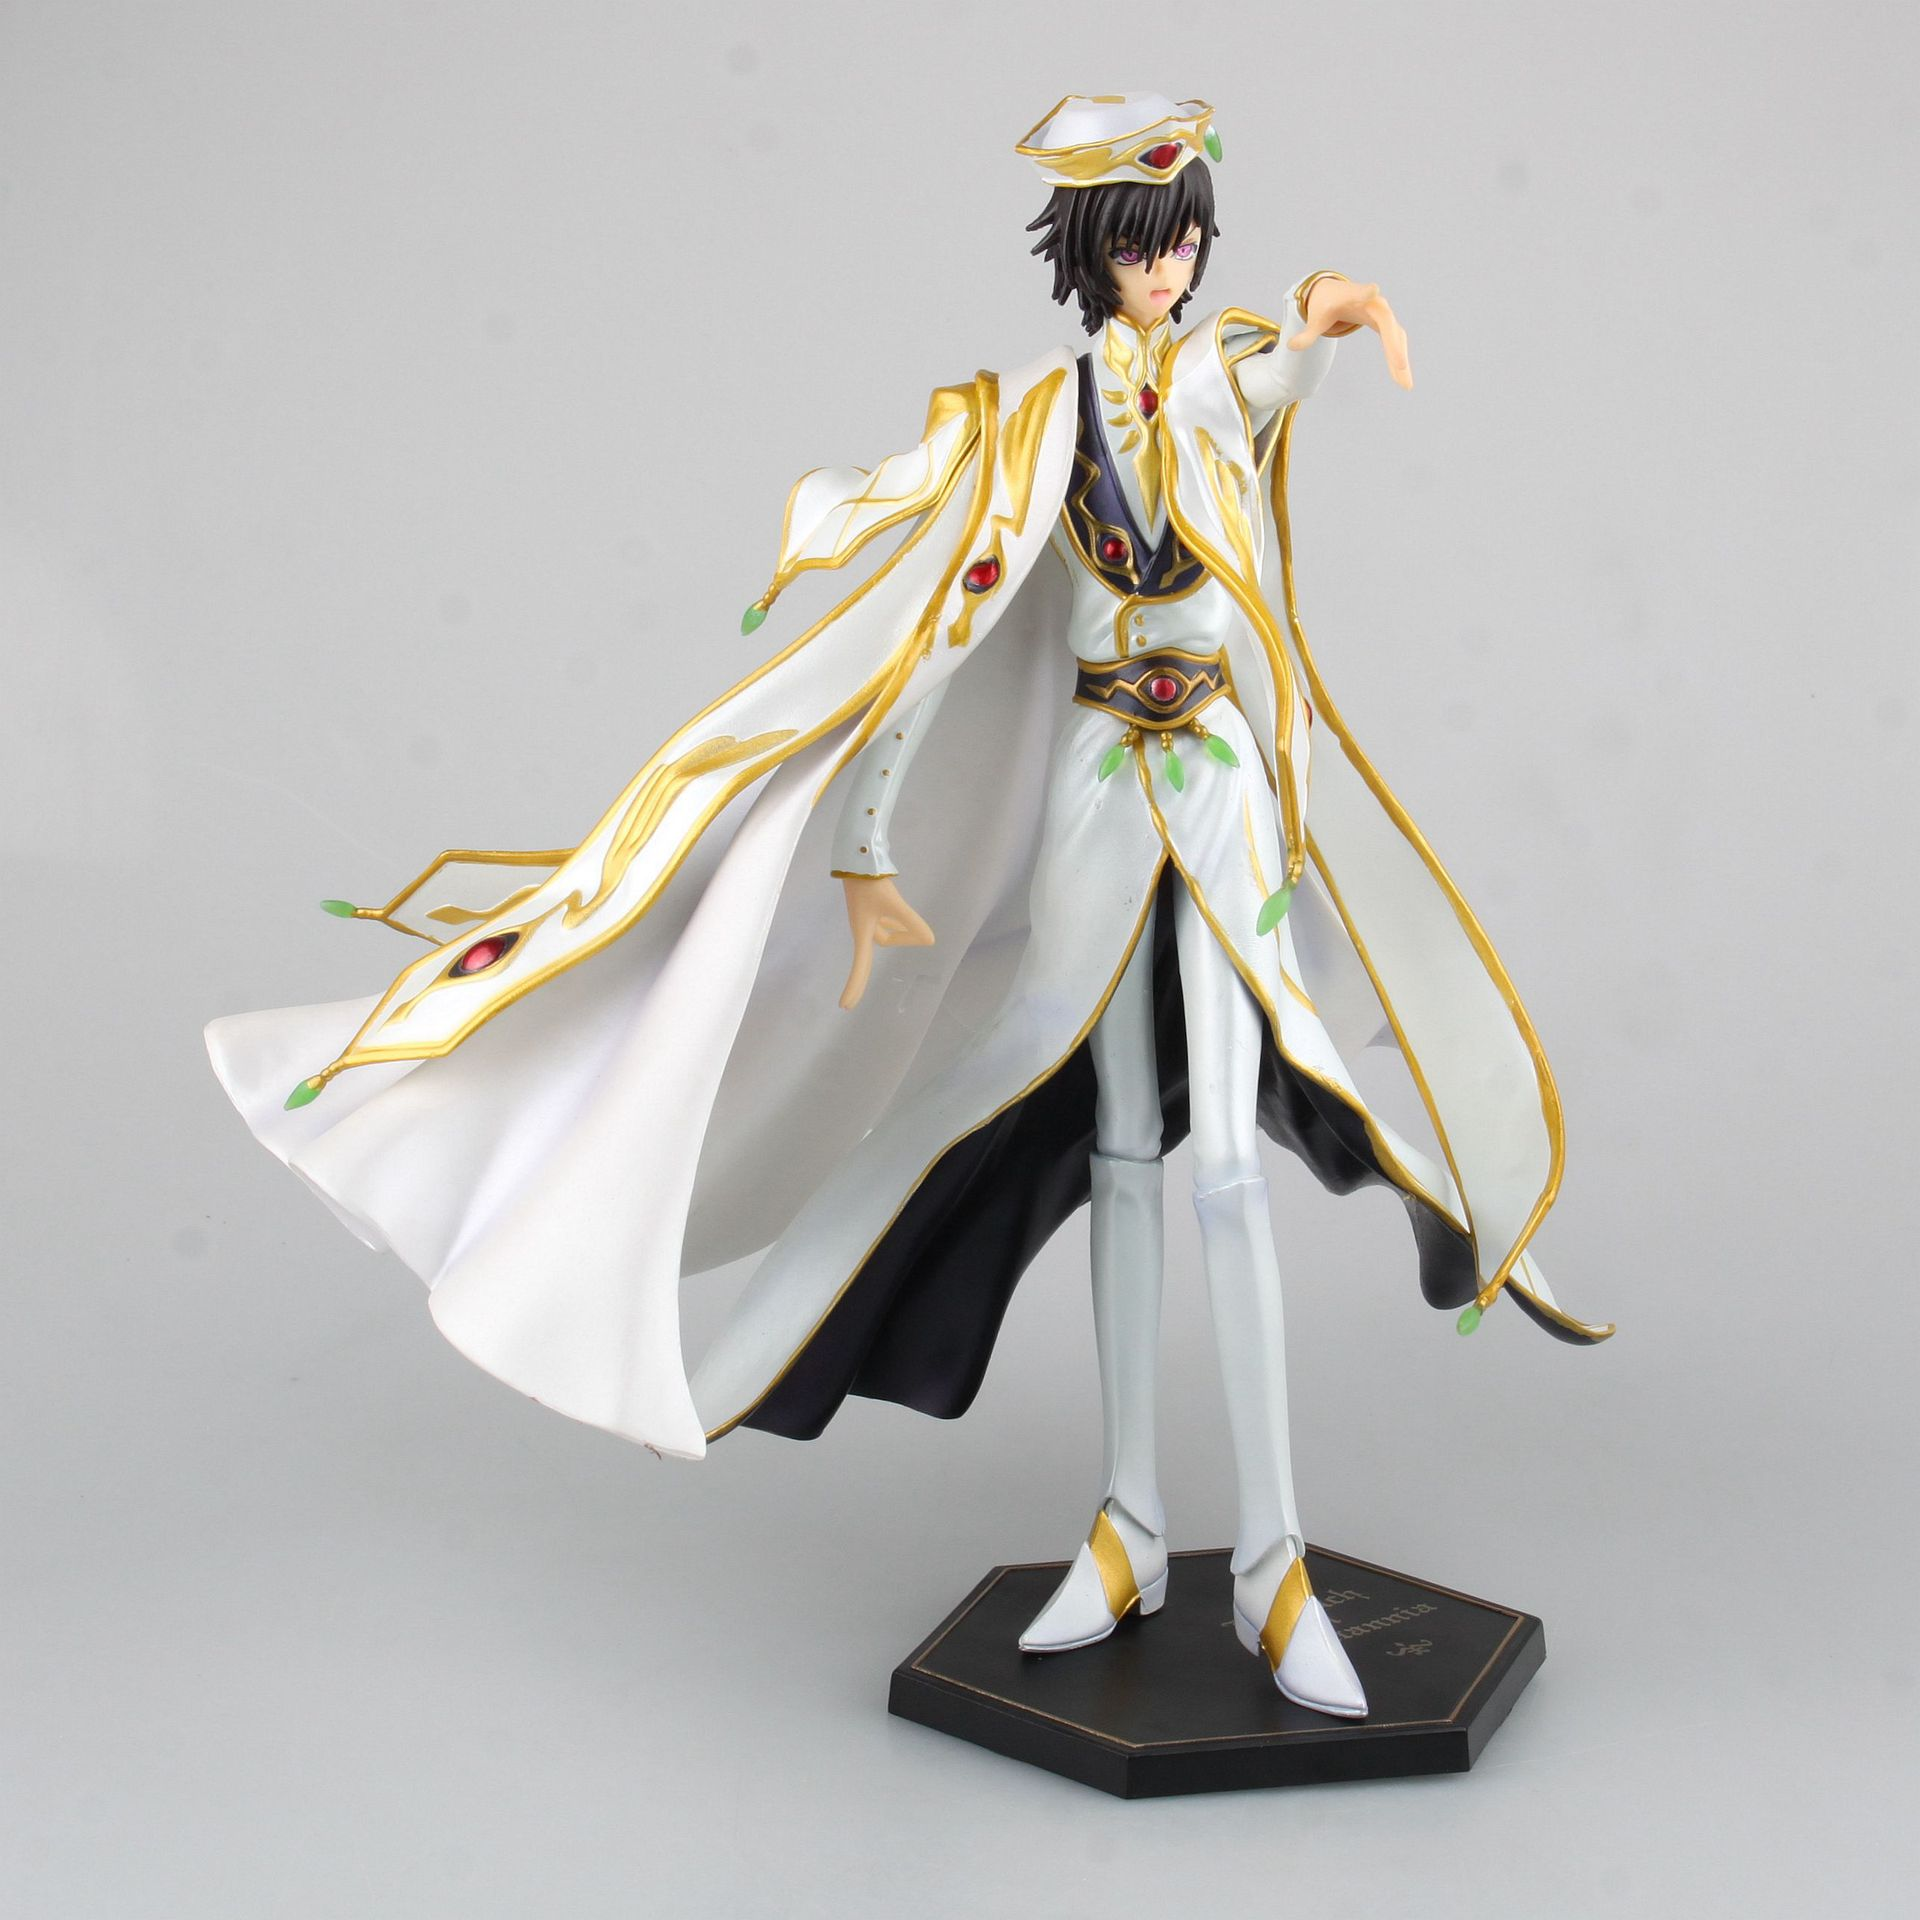 1pcs 24cm pvc Japanese anime figure Code Geass Lelouch Lamperouge action figure collectible model toys brinquedos(China (Mainland))